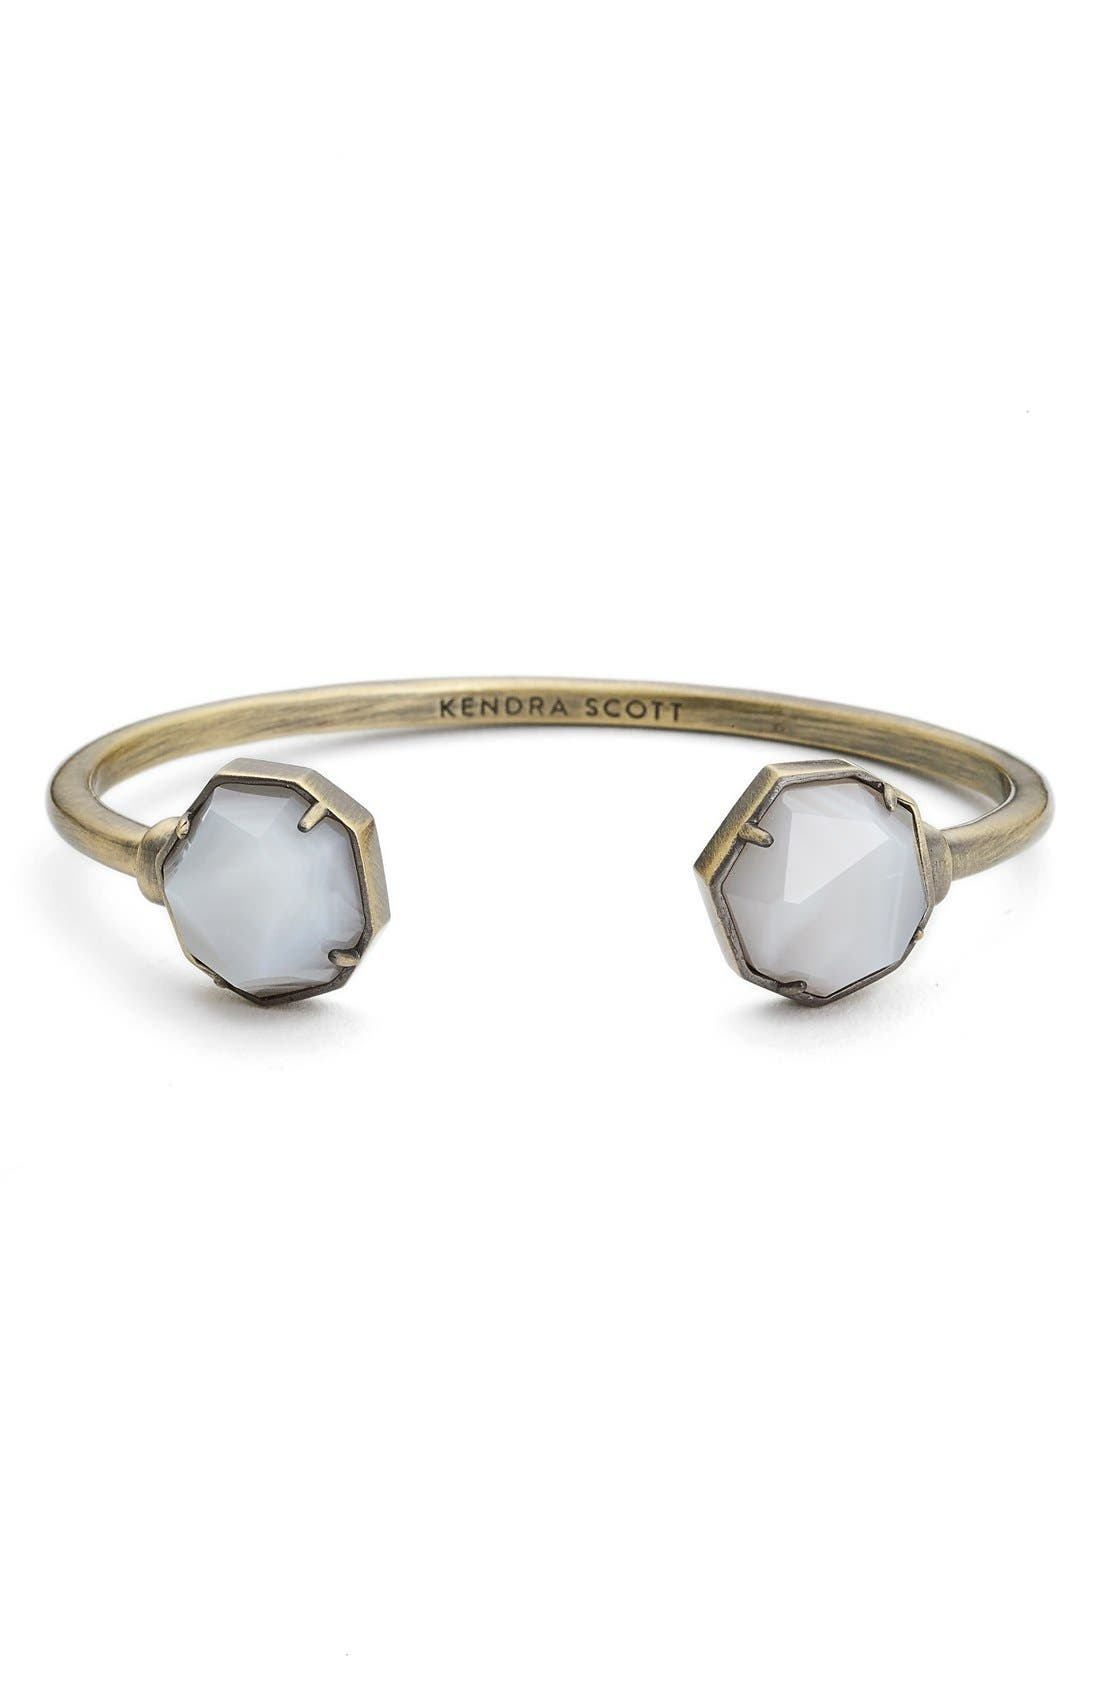 Main Image - Kendra Scott 'Brinkley' Cuff